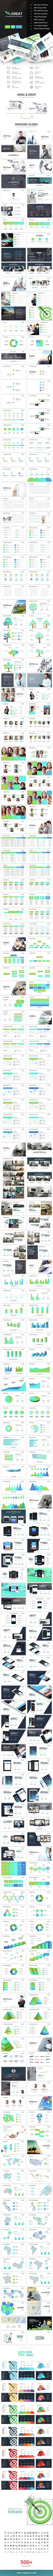 Great - Complete Business PowerPoint Presentation Template. Download here: http://graphicriver.net/item/great-complete-business-presentation/15189355?ref=ksioks